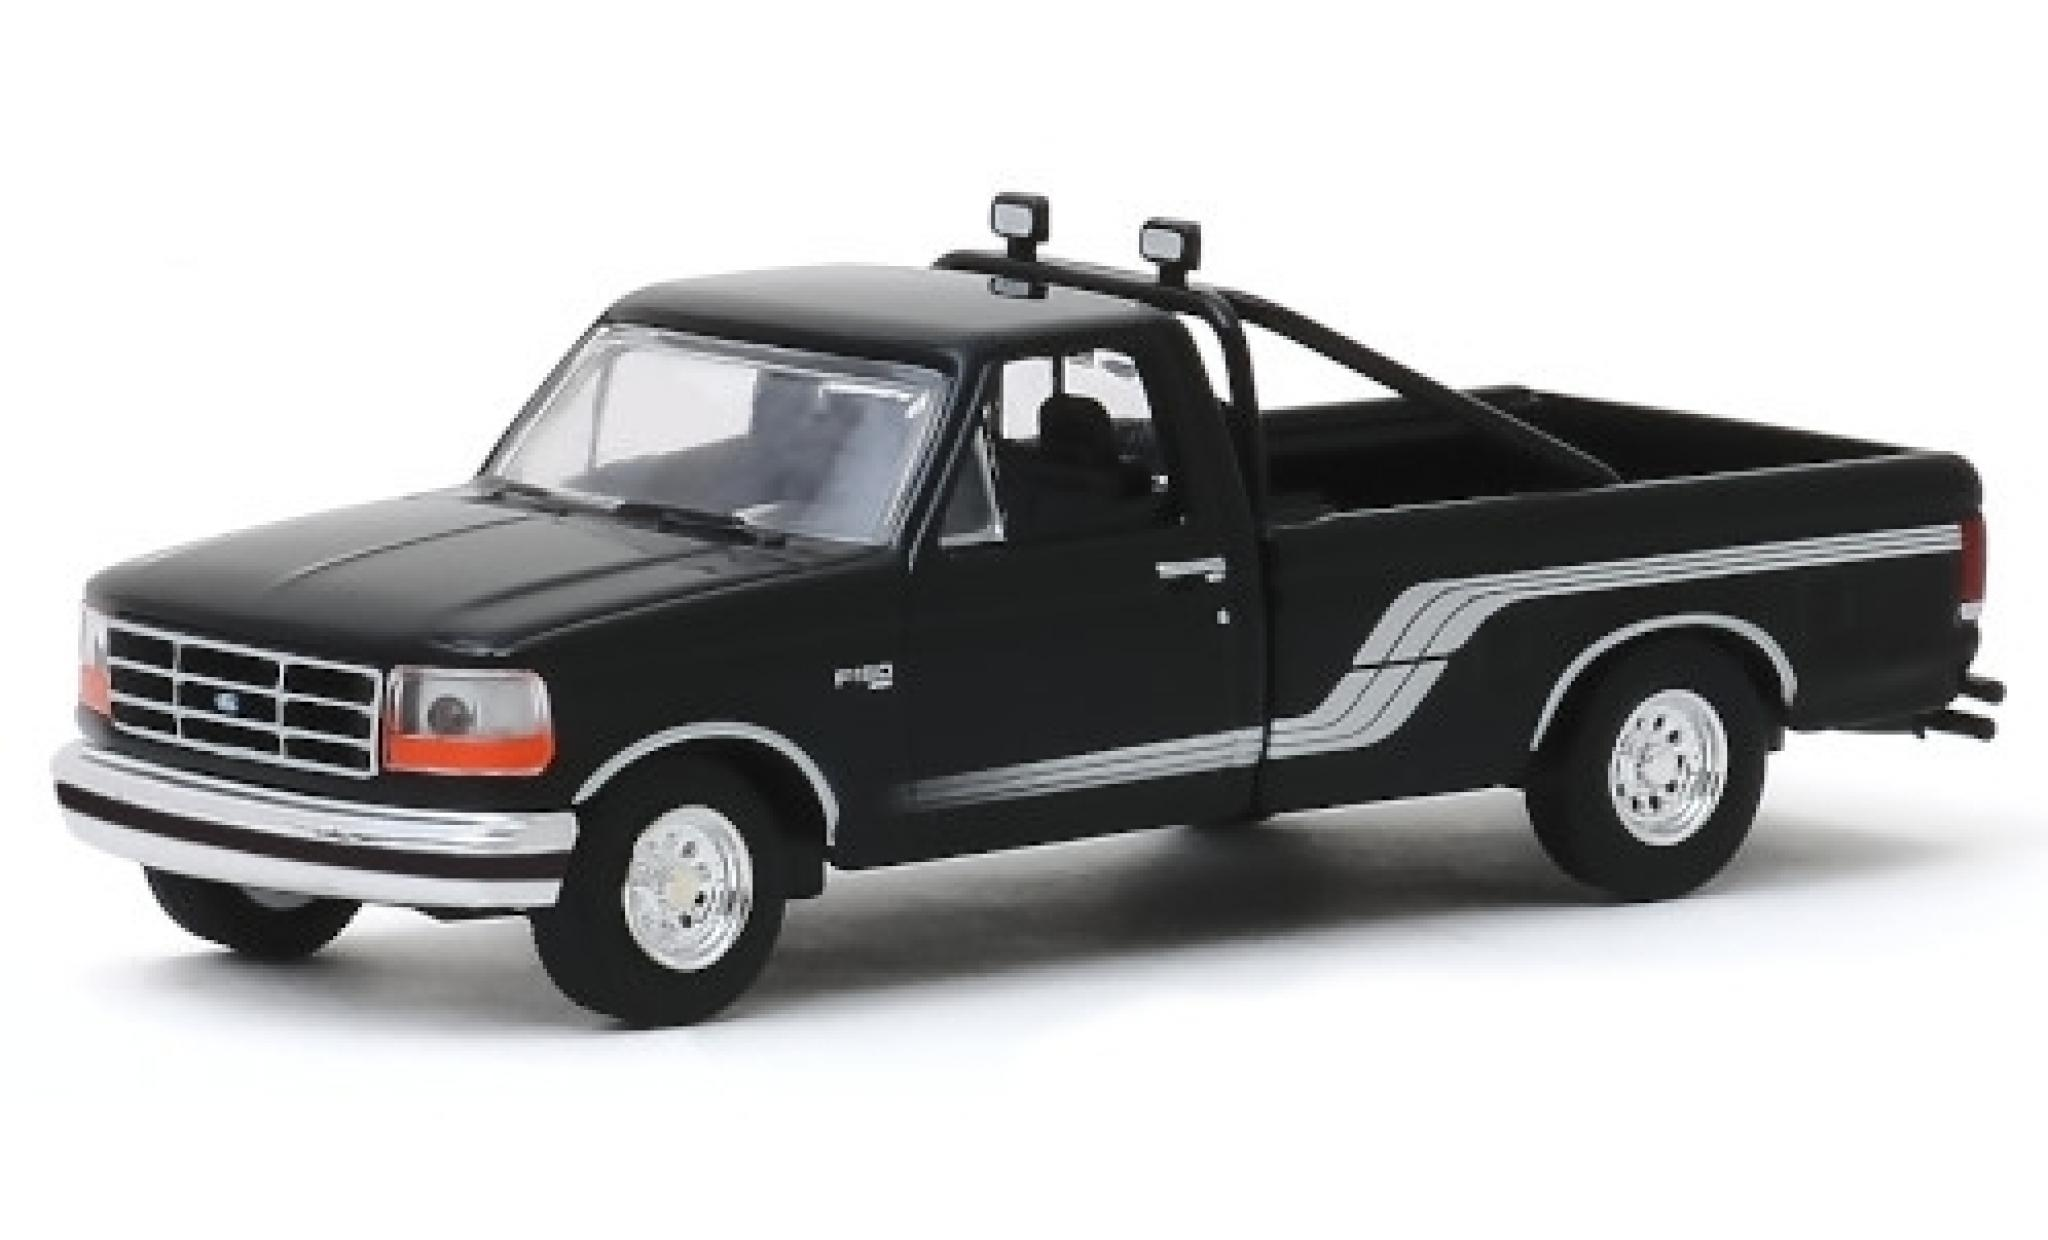 Ford F-1 1/64 Greenlight 50 noire/grise 1992